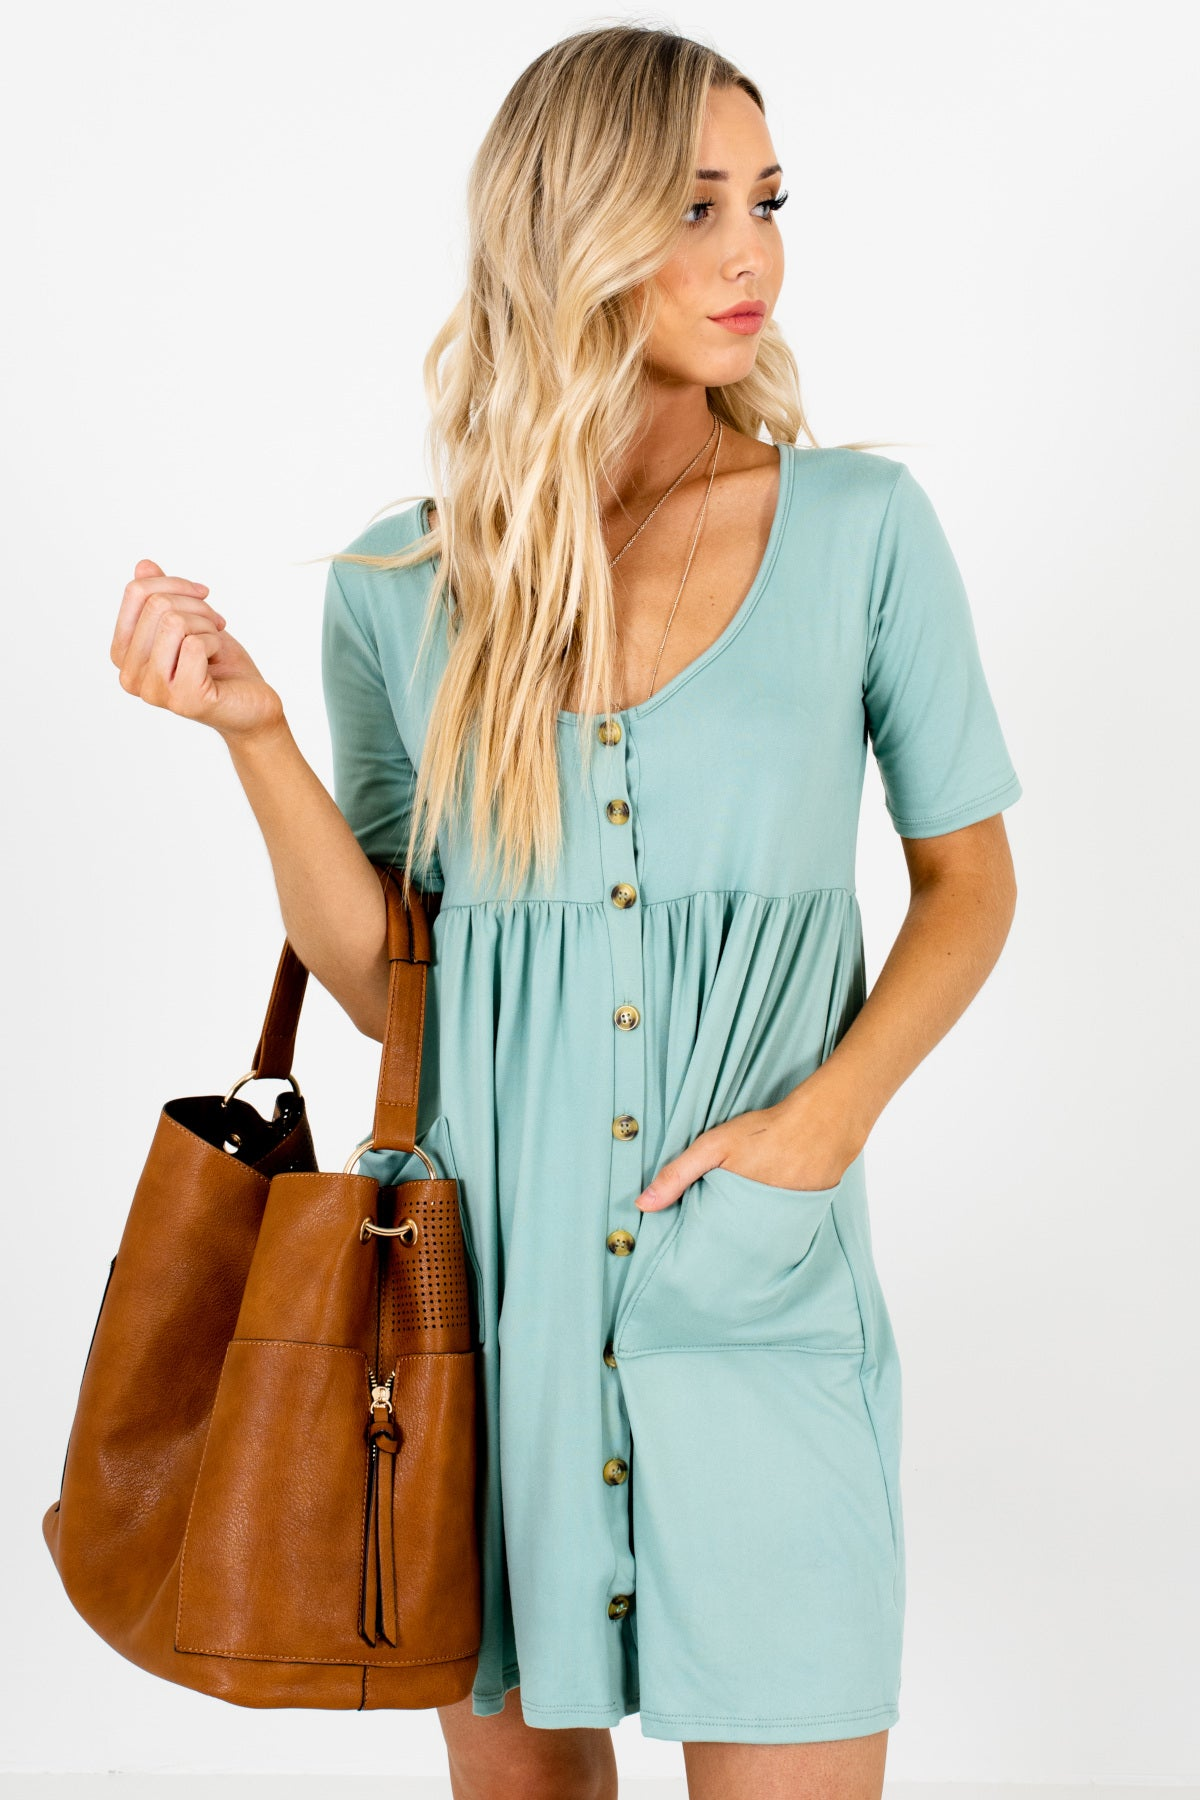 Blue Button Up Mini Dresses Affordable Online Boutique